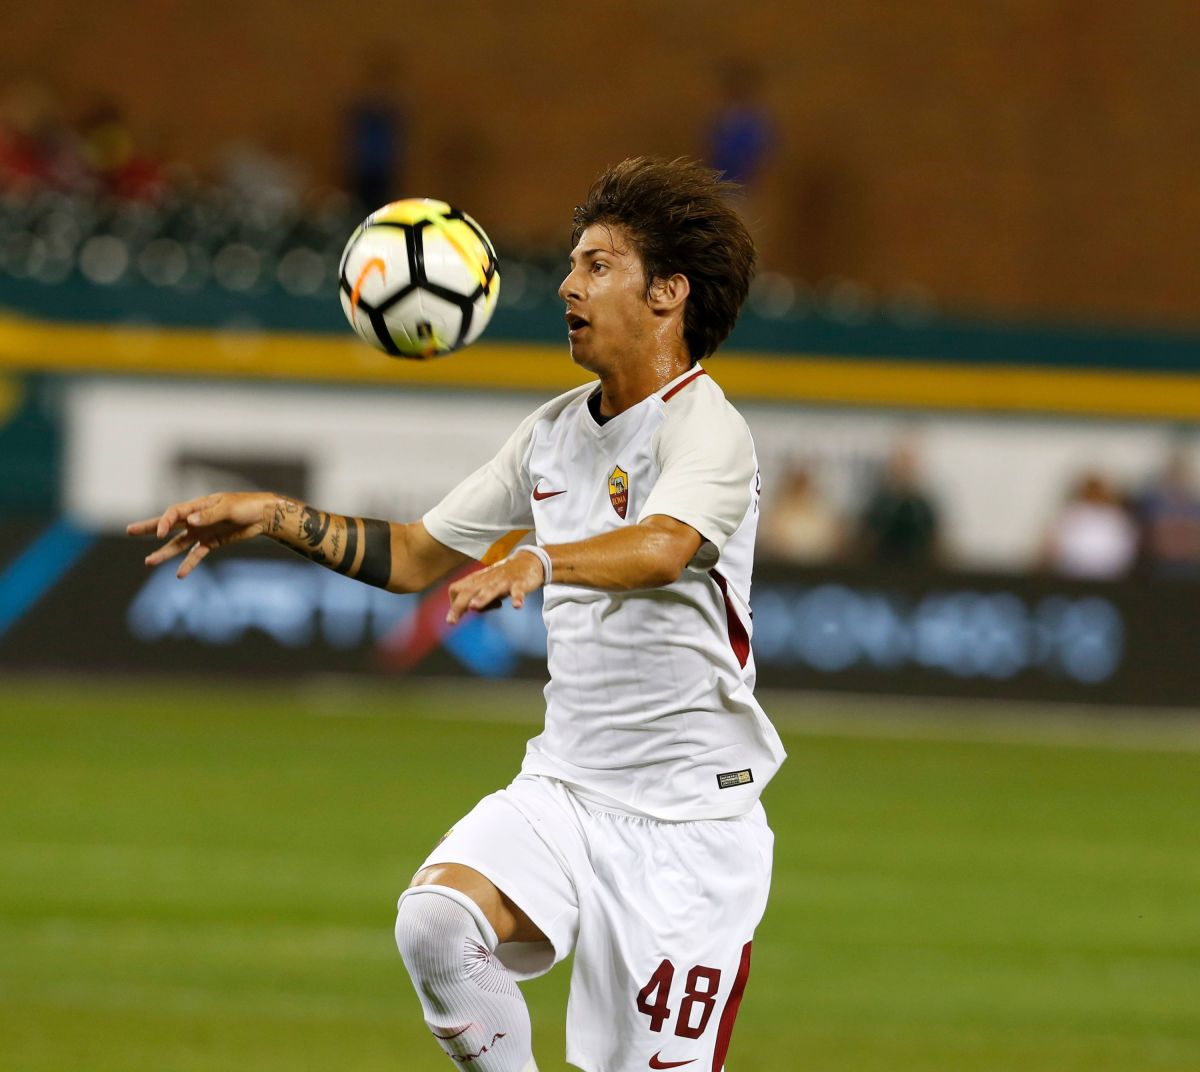 FBL-US-CHAMPIONS CUP-AS ROMA-PSG